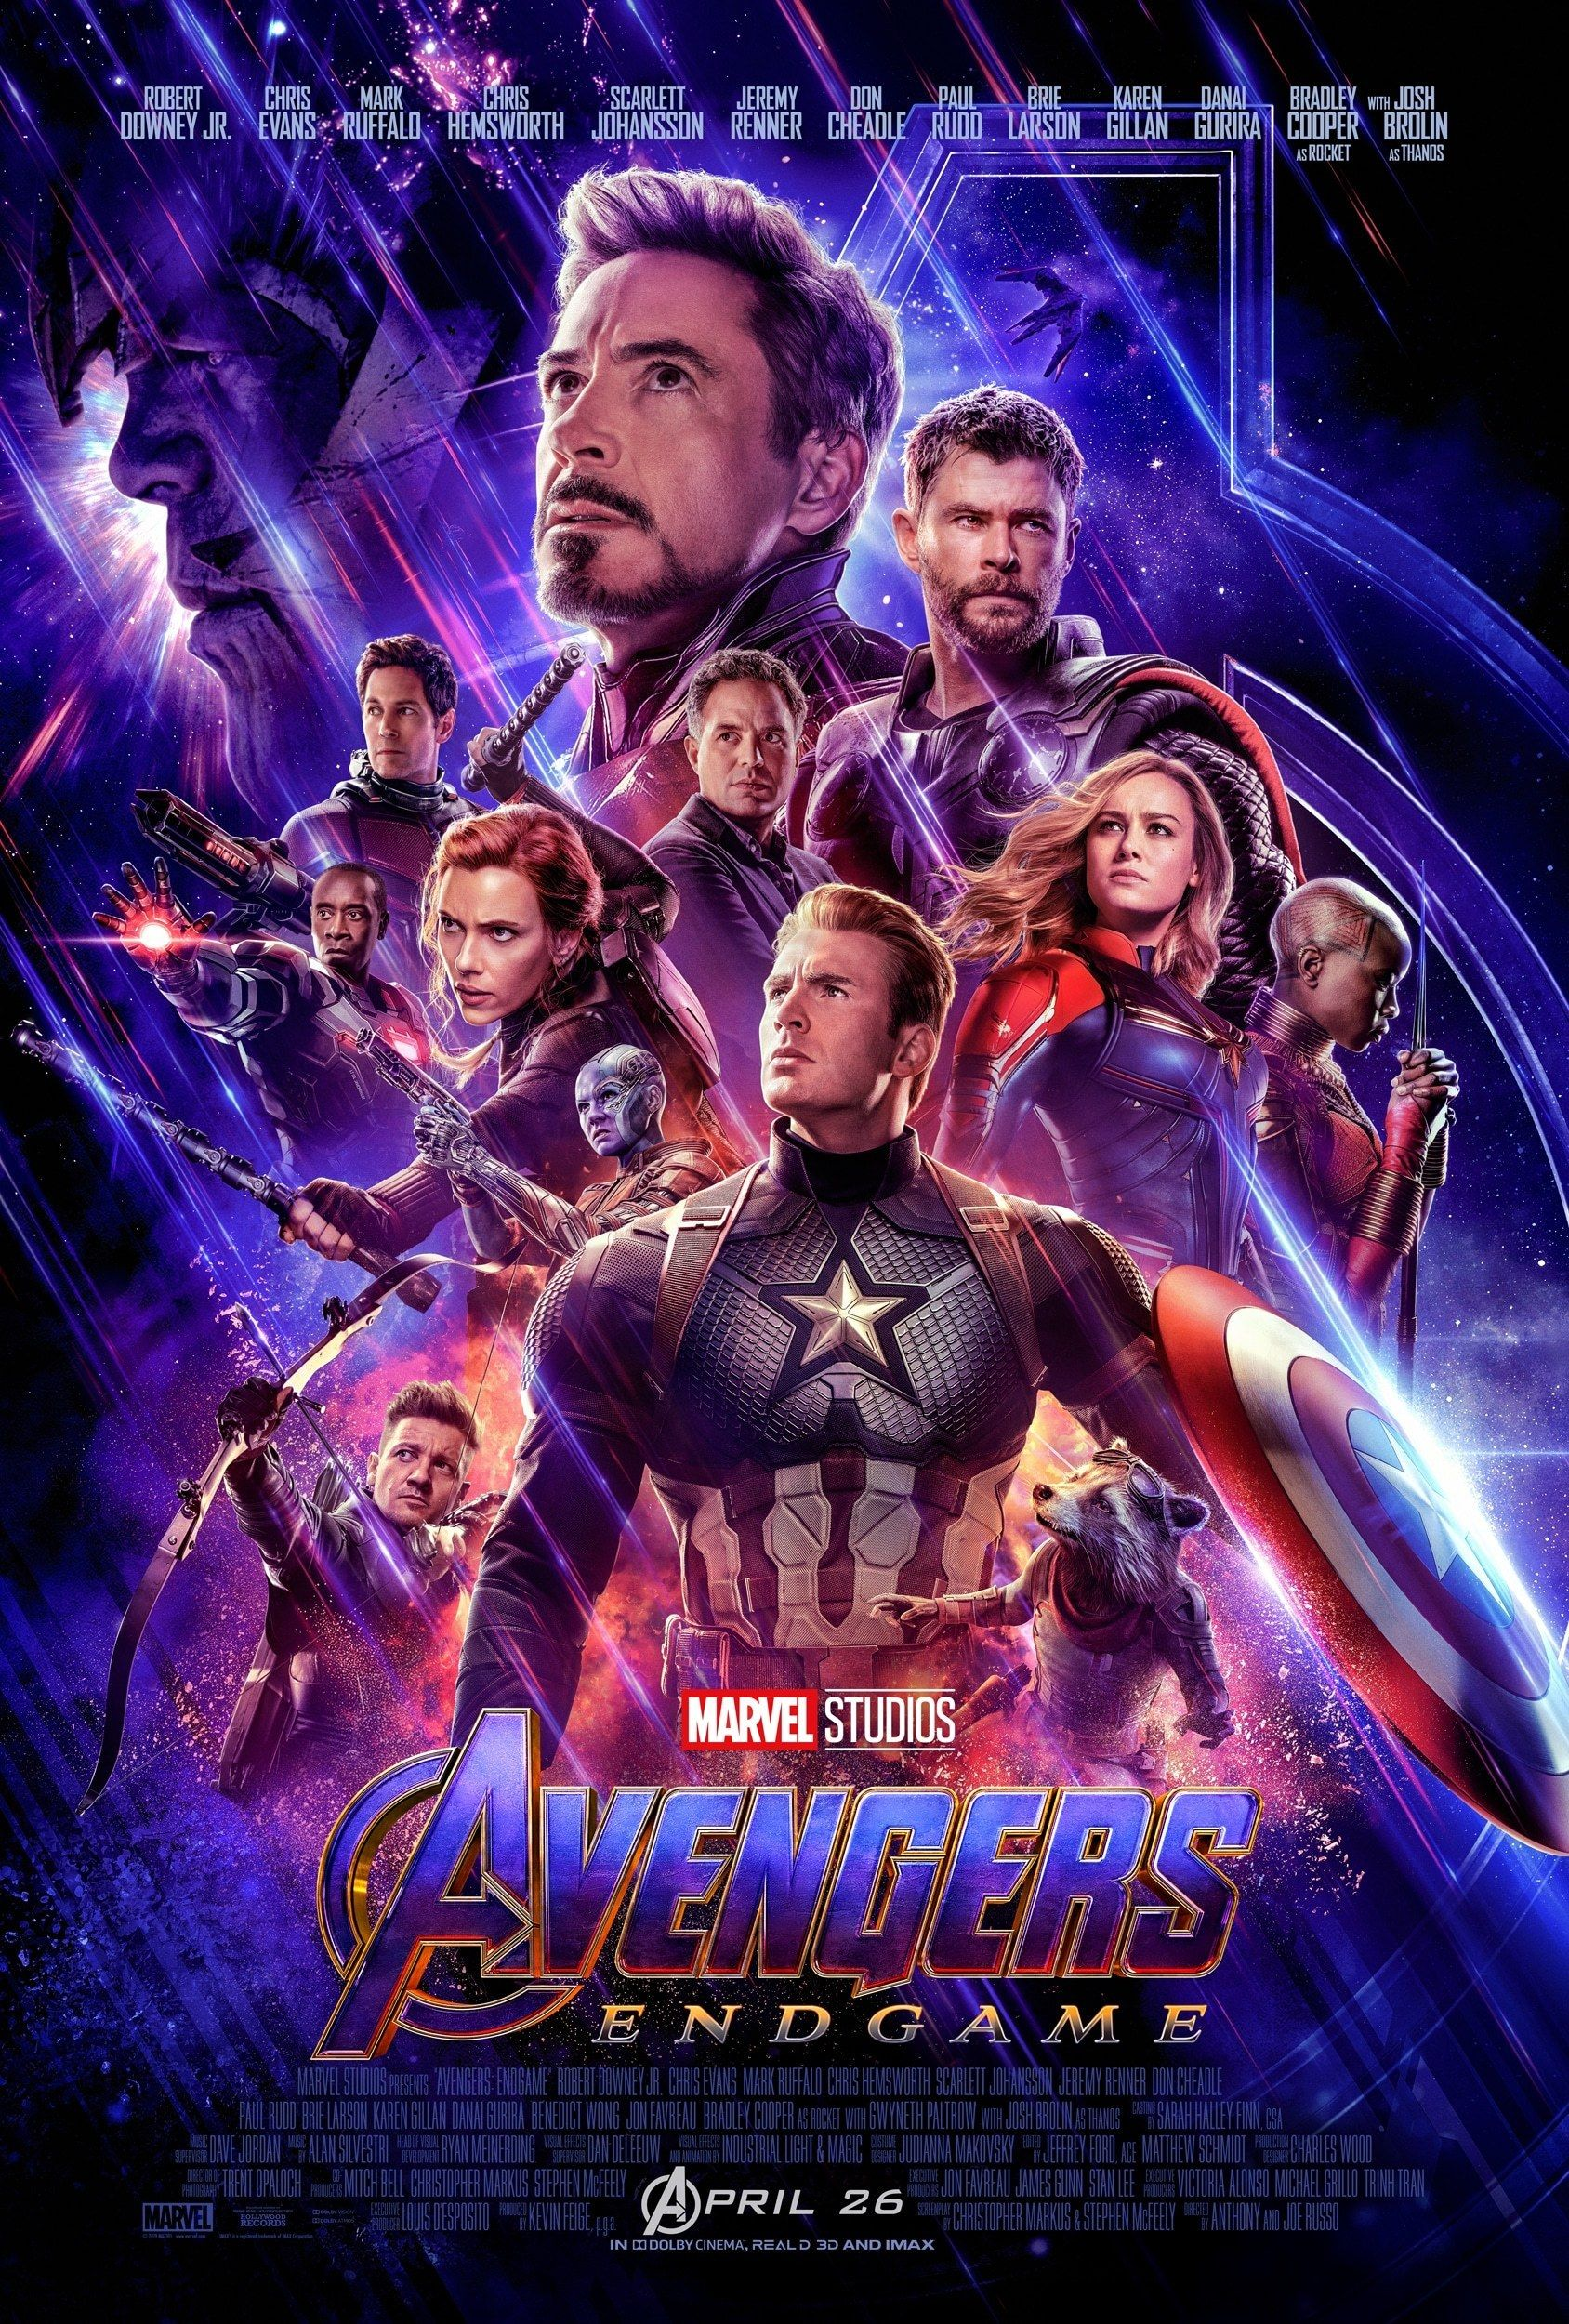 Avengers Endgame On Digital Now And Home Release August 13 Endgame Marvel Movie Posters Marvel Movies Avengers Movies